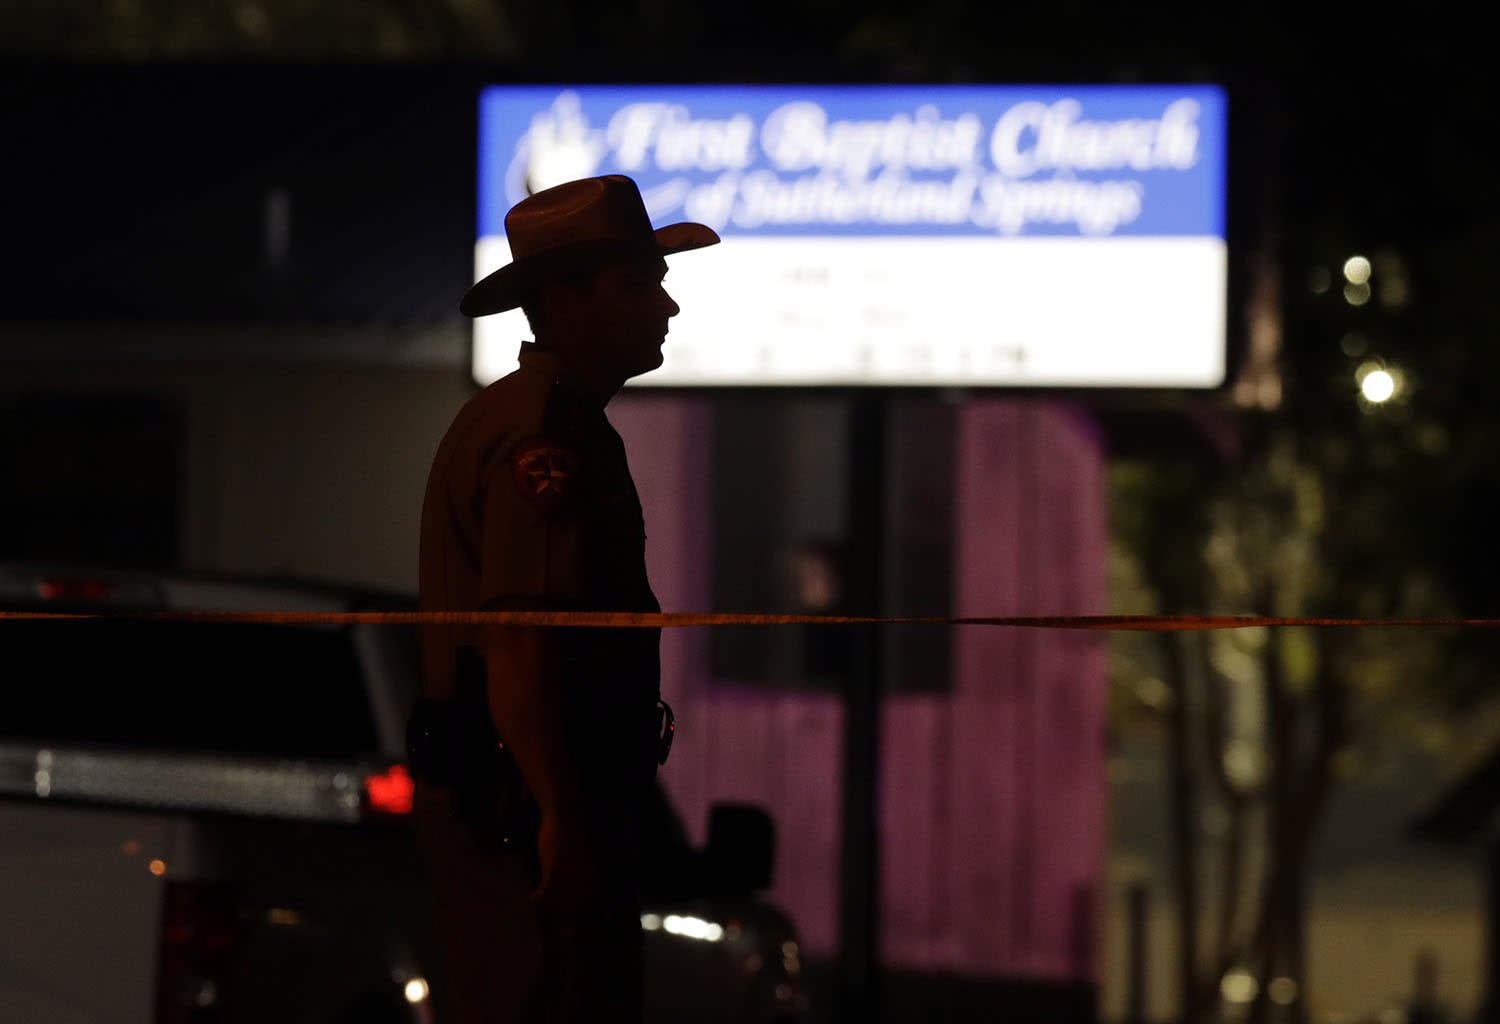 <p>A law enforcement official stands watch outside the First Baptist Church of Sutherland Springs, the scene of a mass shooting, Nov. 5, 2017, in Sutherland Springs, Texas. (Eric Gay/AP) </p>